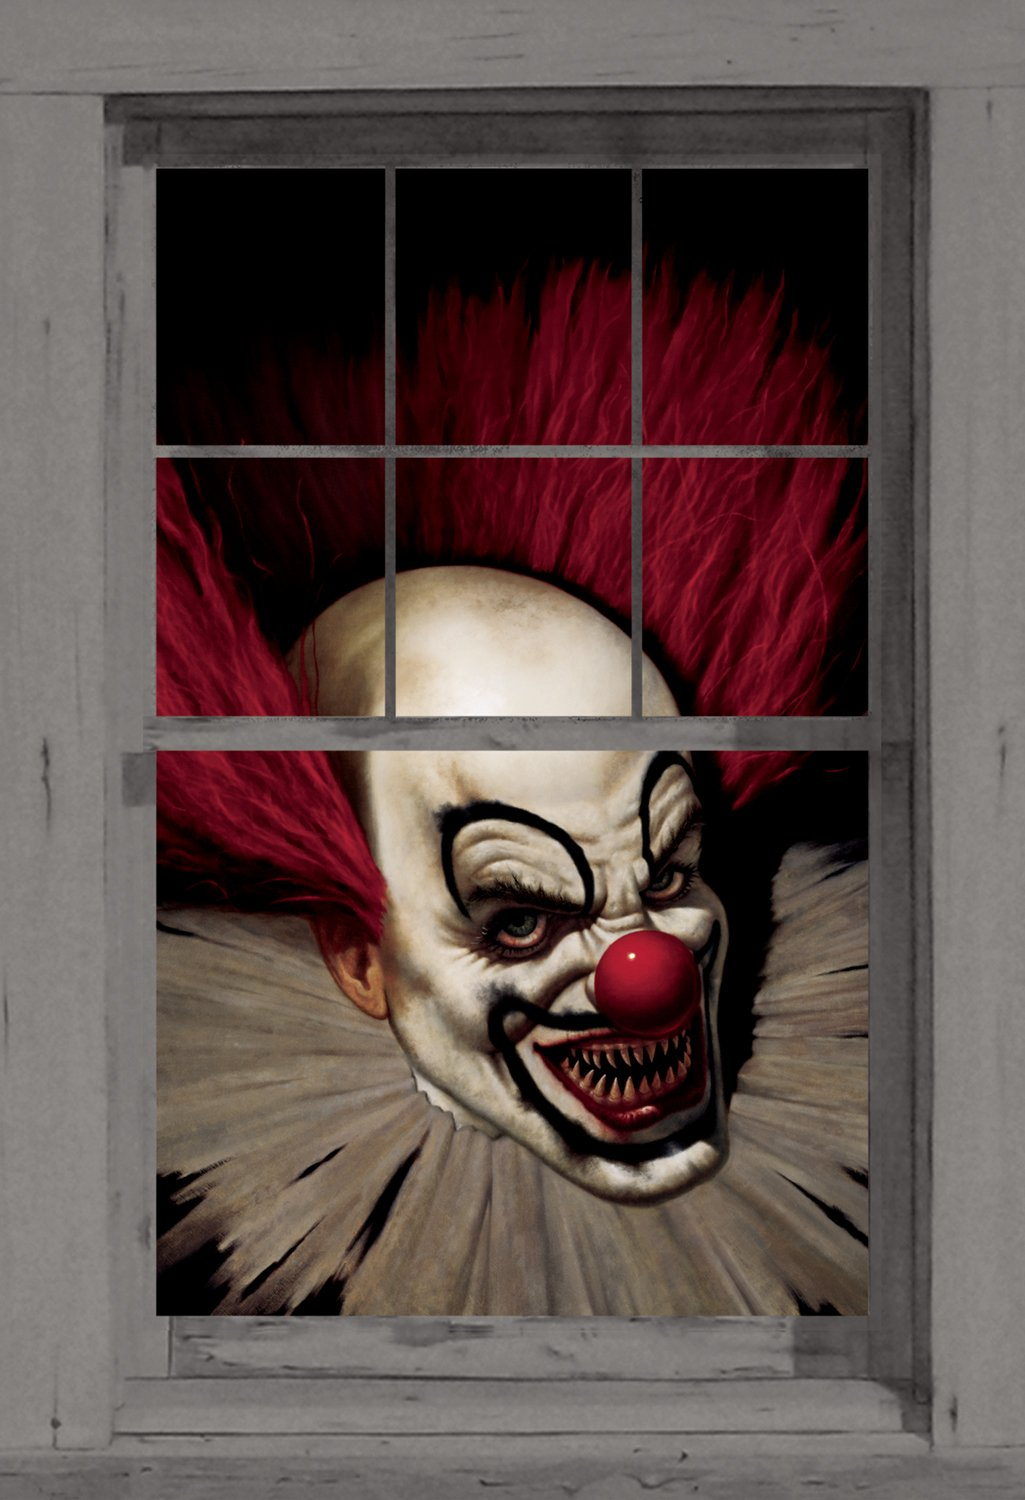 amazoncom wowindow posters slammy the scary clown halloween window decoration 345x60 backlit poster prints posters prints - Scary Decorations